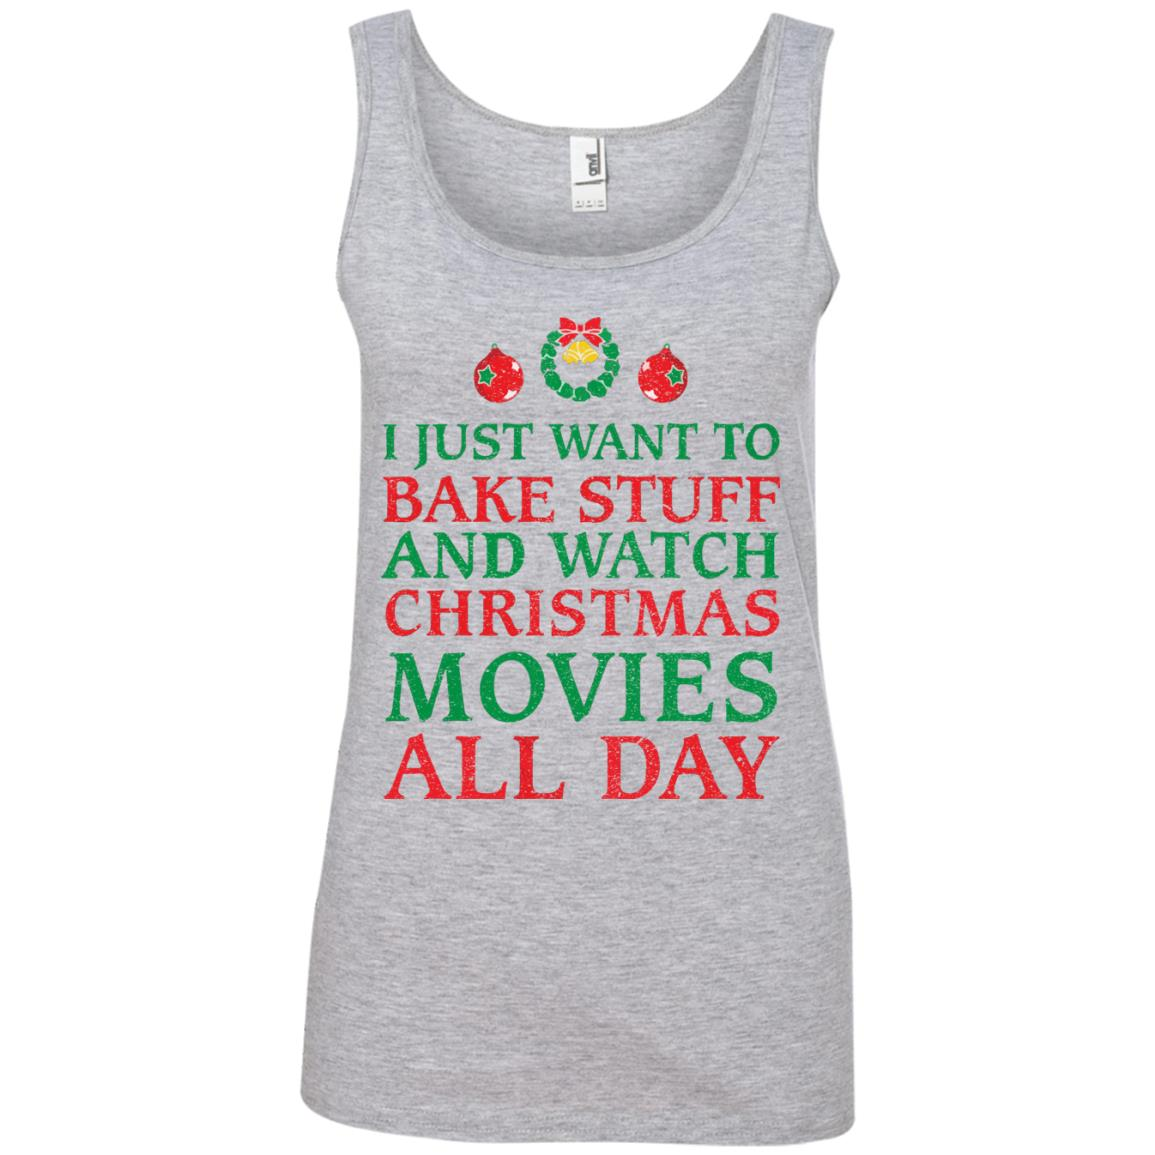 image 2702 - I Just Want to Bake Stuff and Watch Christmas Movie All Day Sweater, Ugly Sweatshirts